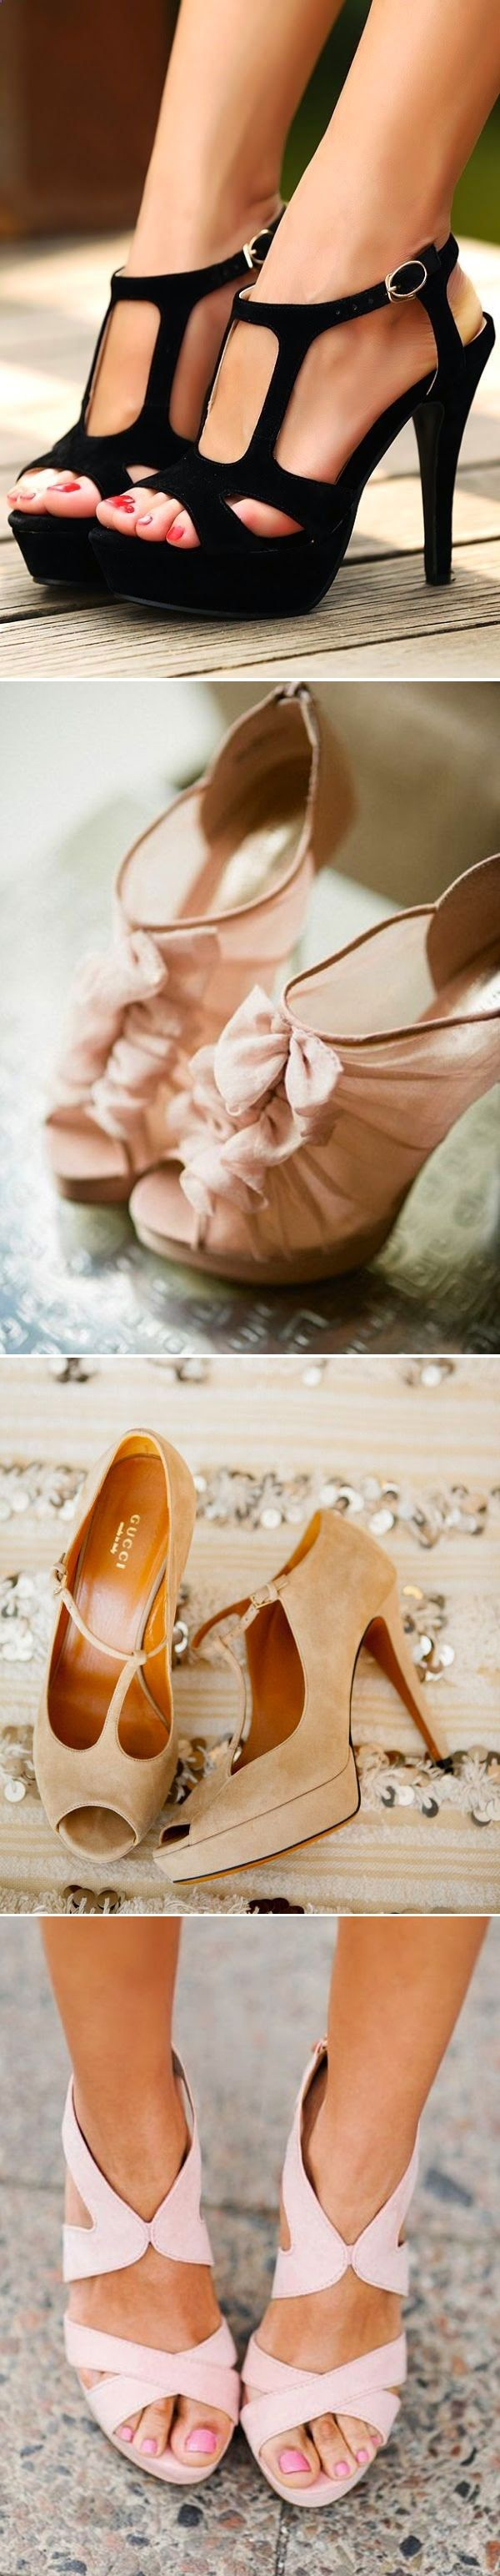 Beautiful Heels for Spring and Summer